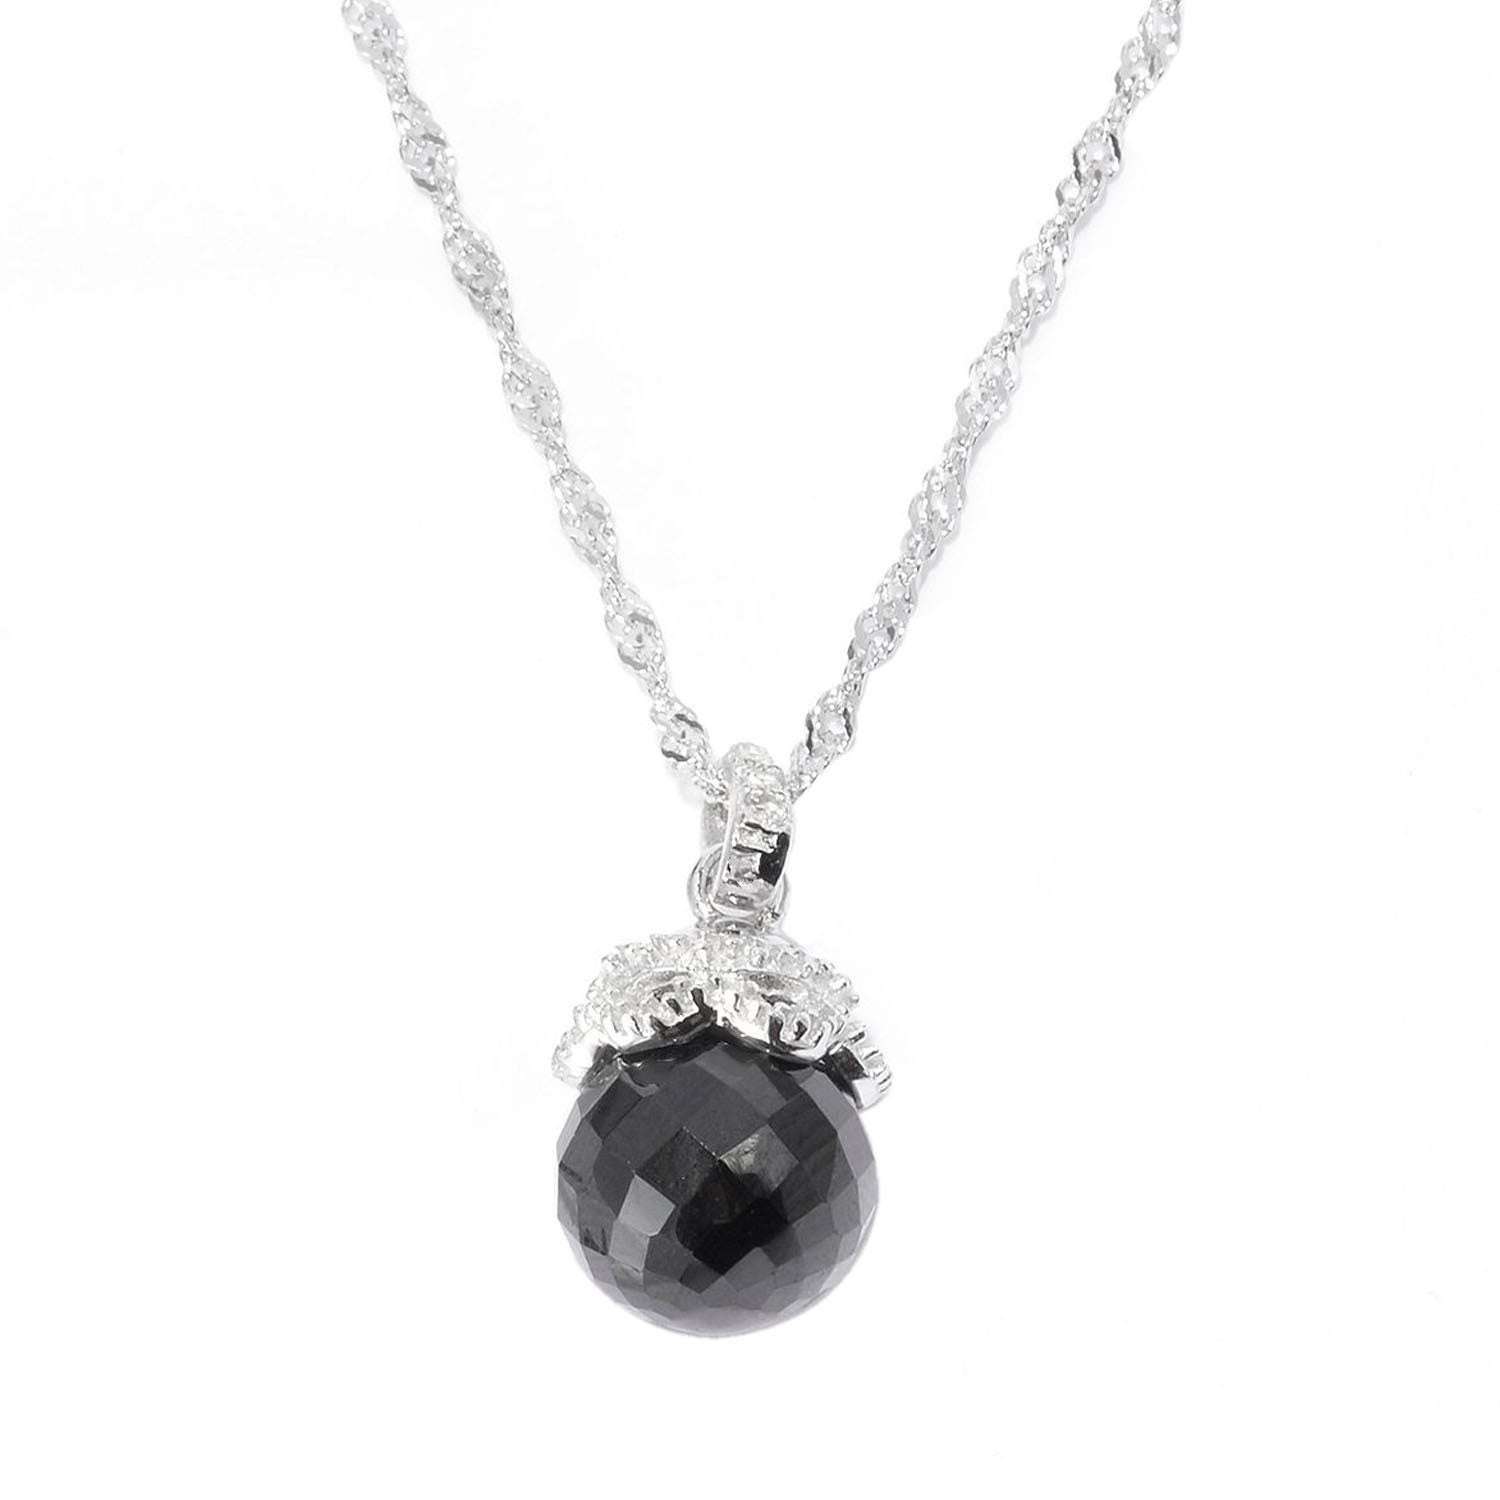 Shop sterling silver round cut black spinel white topaz pendant shop sterling silver round cut black spinel white topaz pendant necklace free shipping today overstock 10132222 aloadofball Gallery